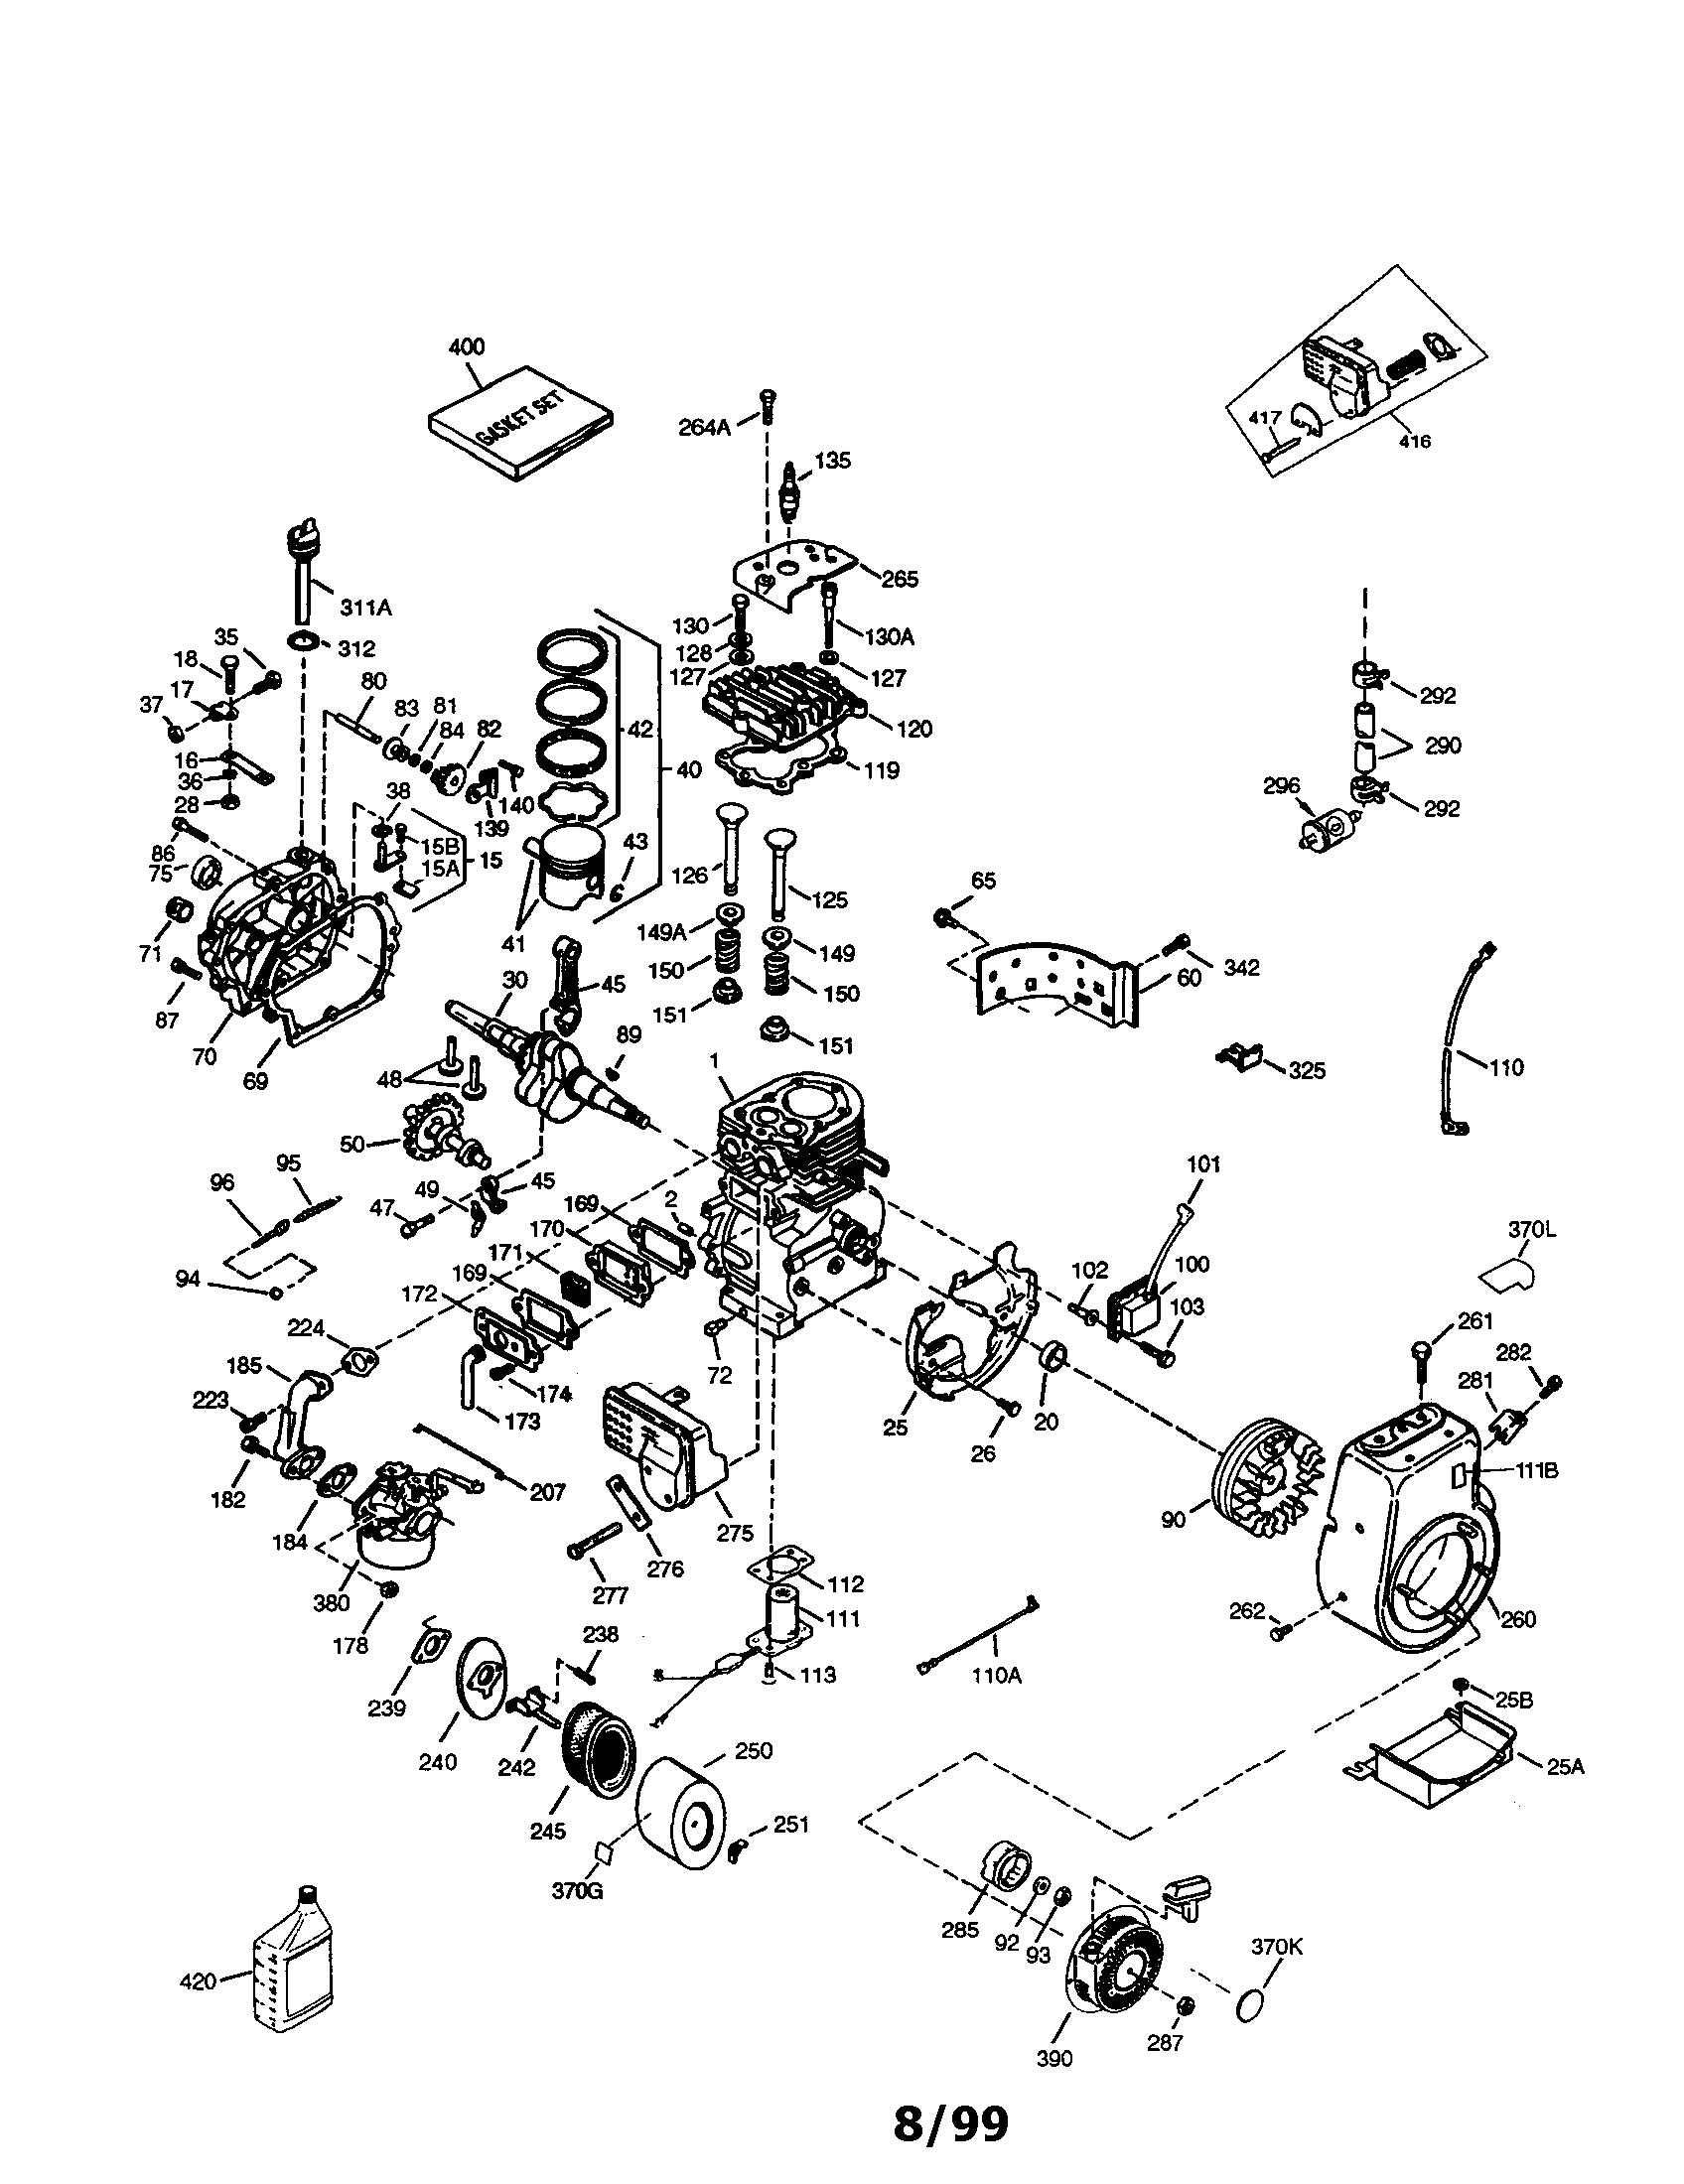 Hm100 Ignition System Wiring Diagram - Search For Wiring Diagrams •